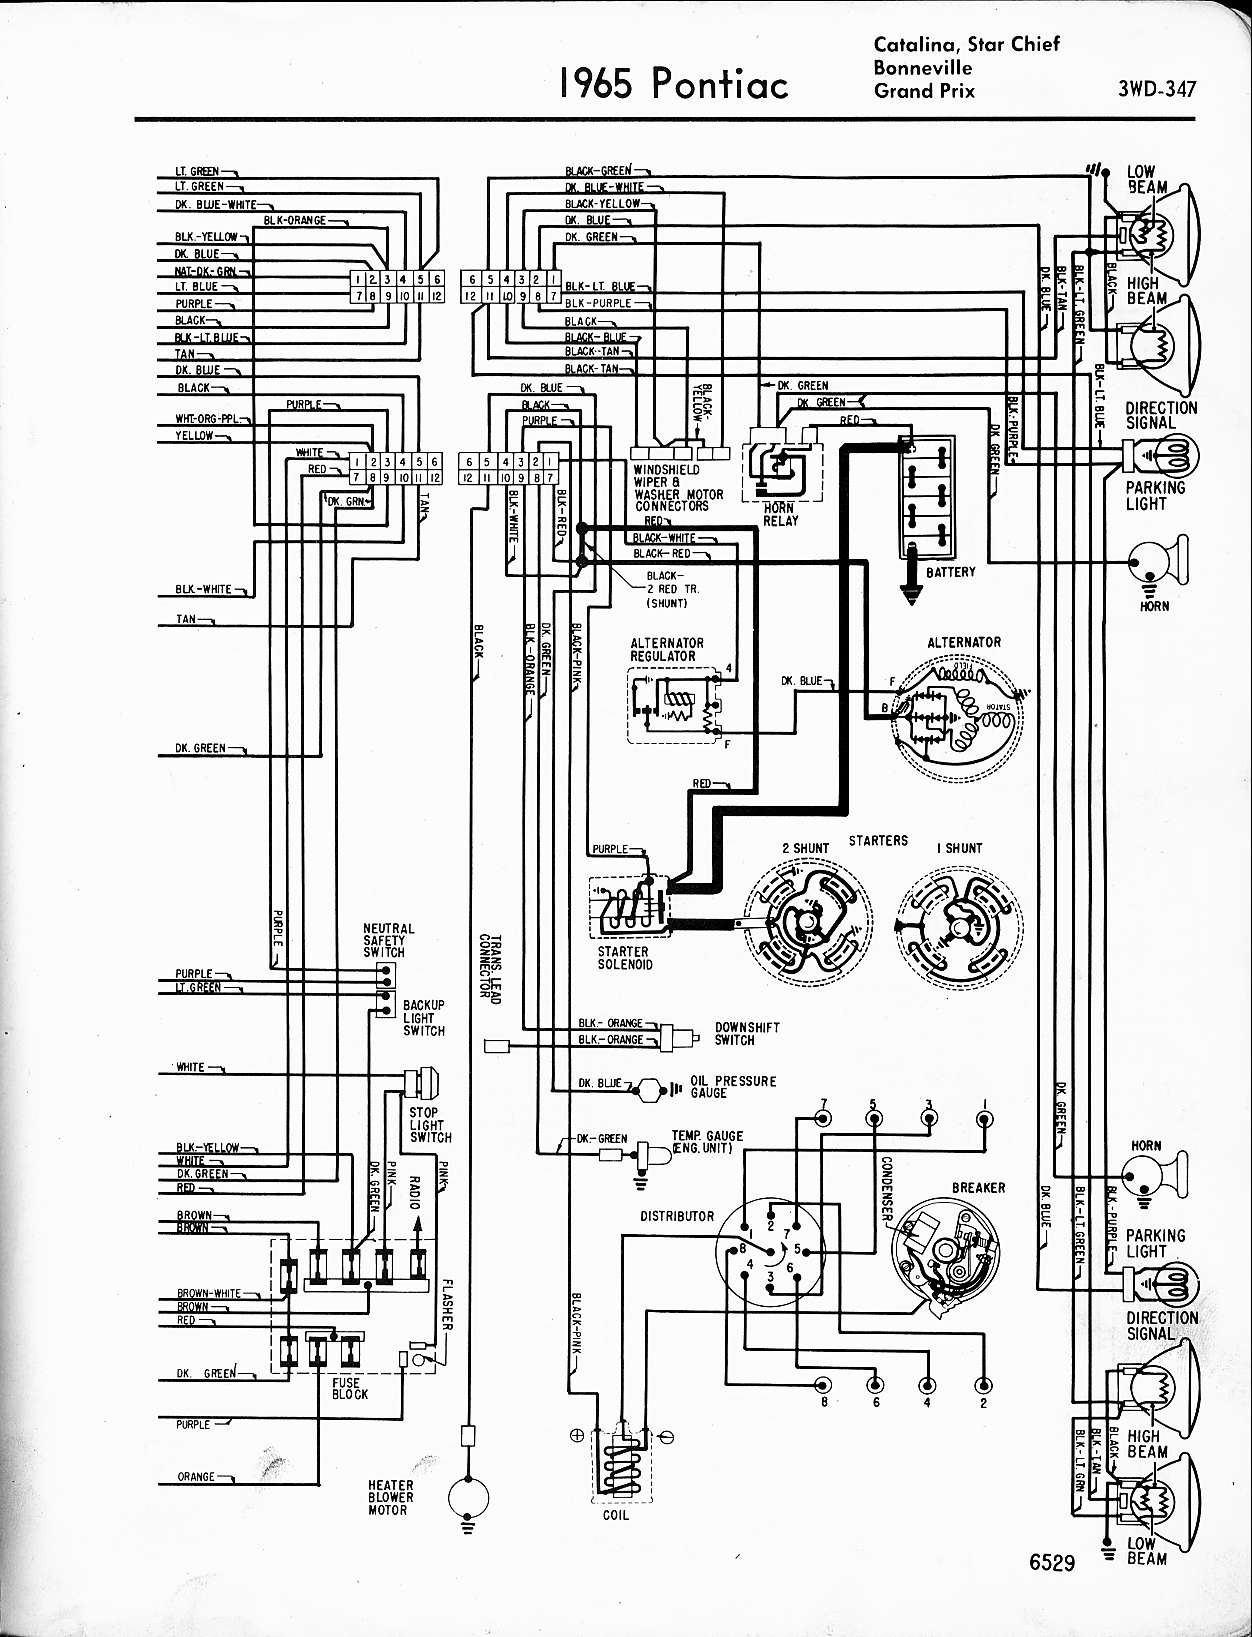 1964 pontiac bonneville wiring diagram wire data schema u2022 rh 207 246 81 240 1997 Pontiac Grand Prix Wiring-Diagram 2001 Pontiac Grand Prix Wiring-Diagram